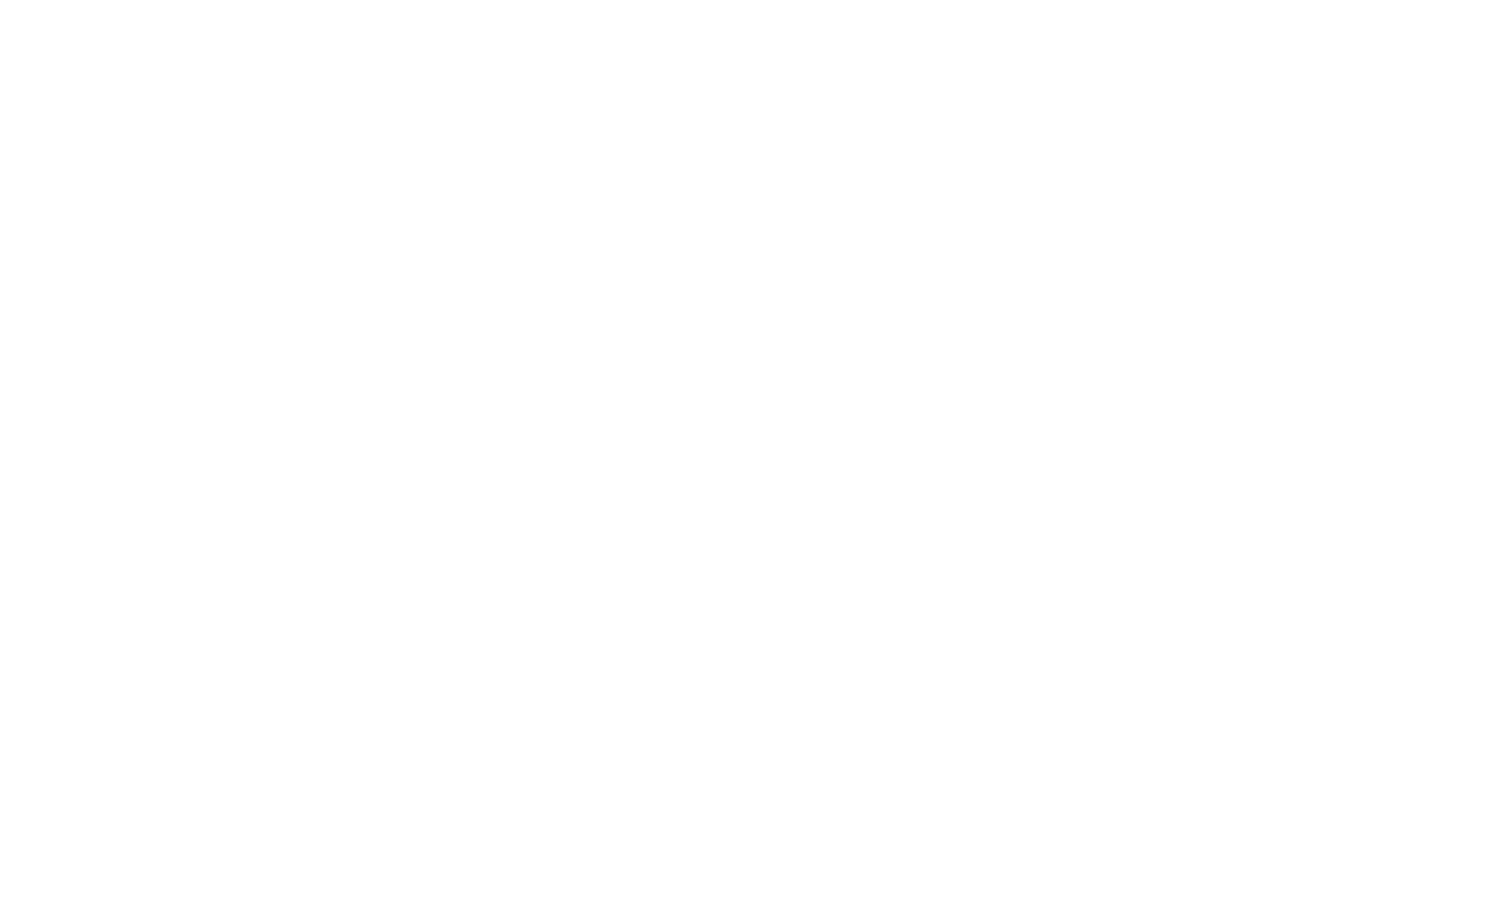 New York Men's Leadership Forum